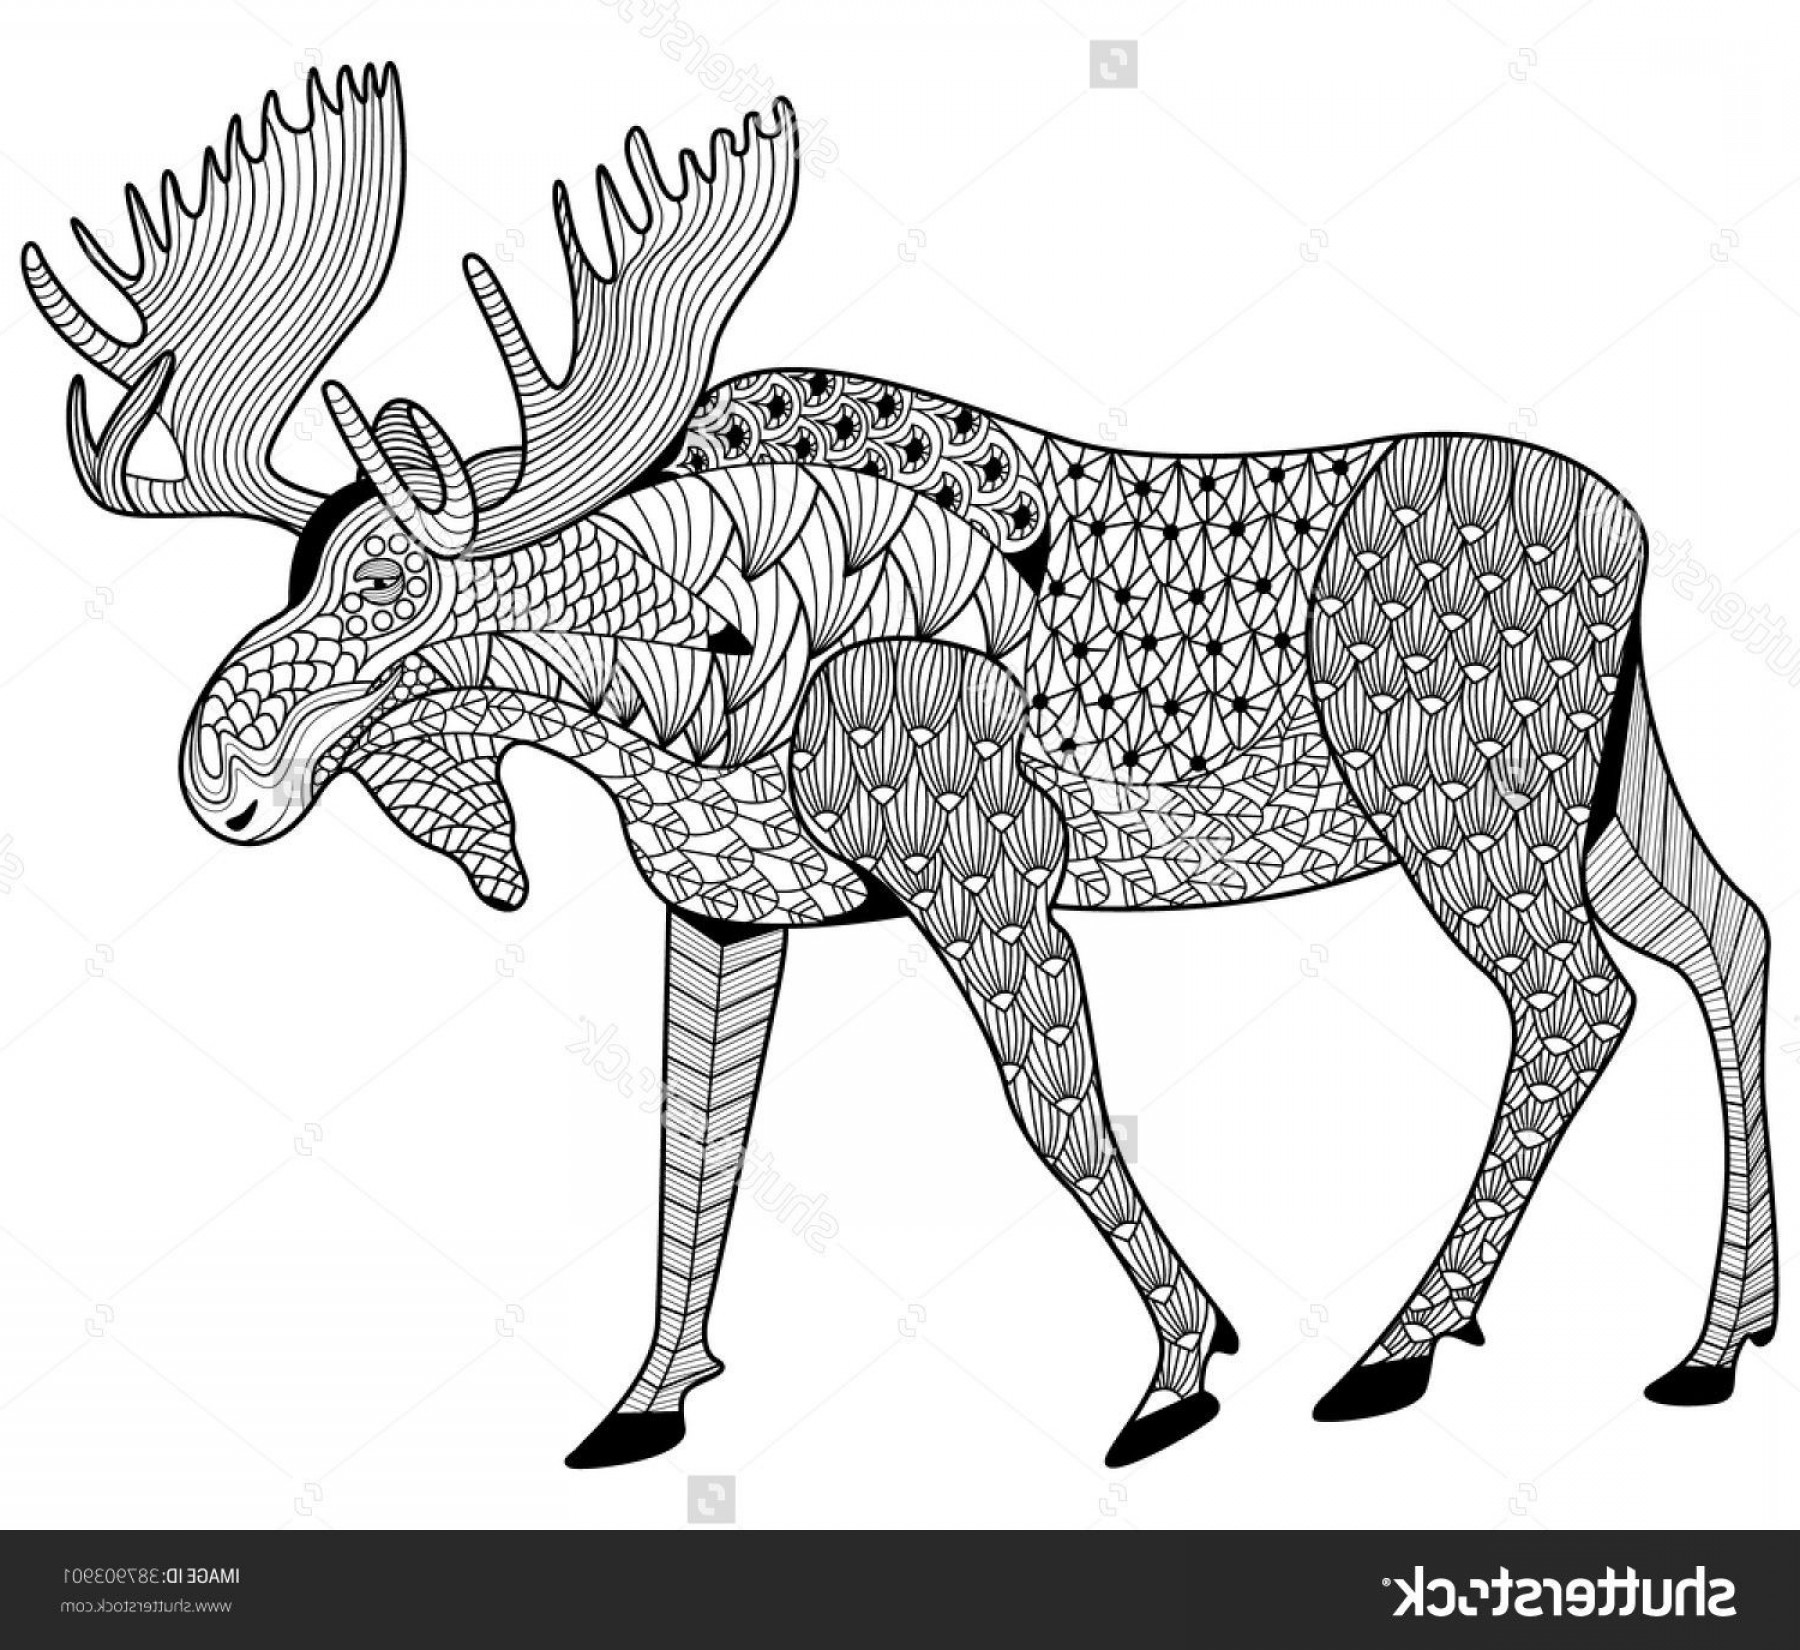 Alaska Moose Vectors: Perspective Moose Coloring Pages Stock Vector Page For Adults Zen Tangle Design